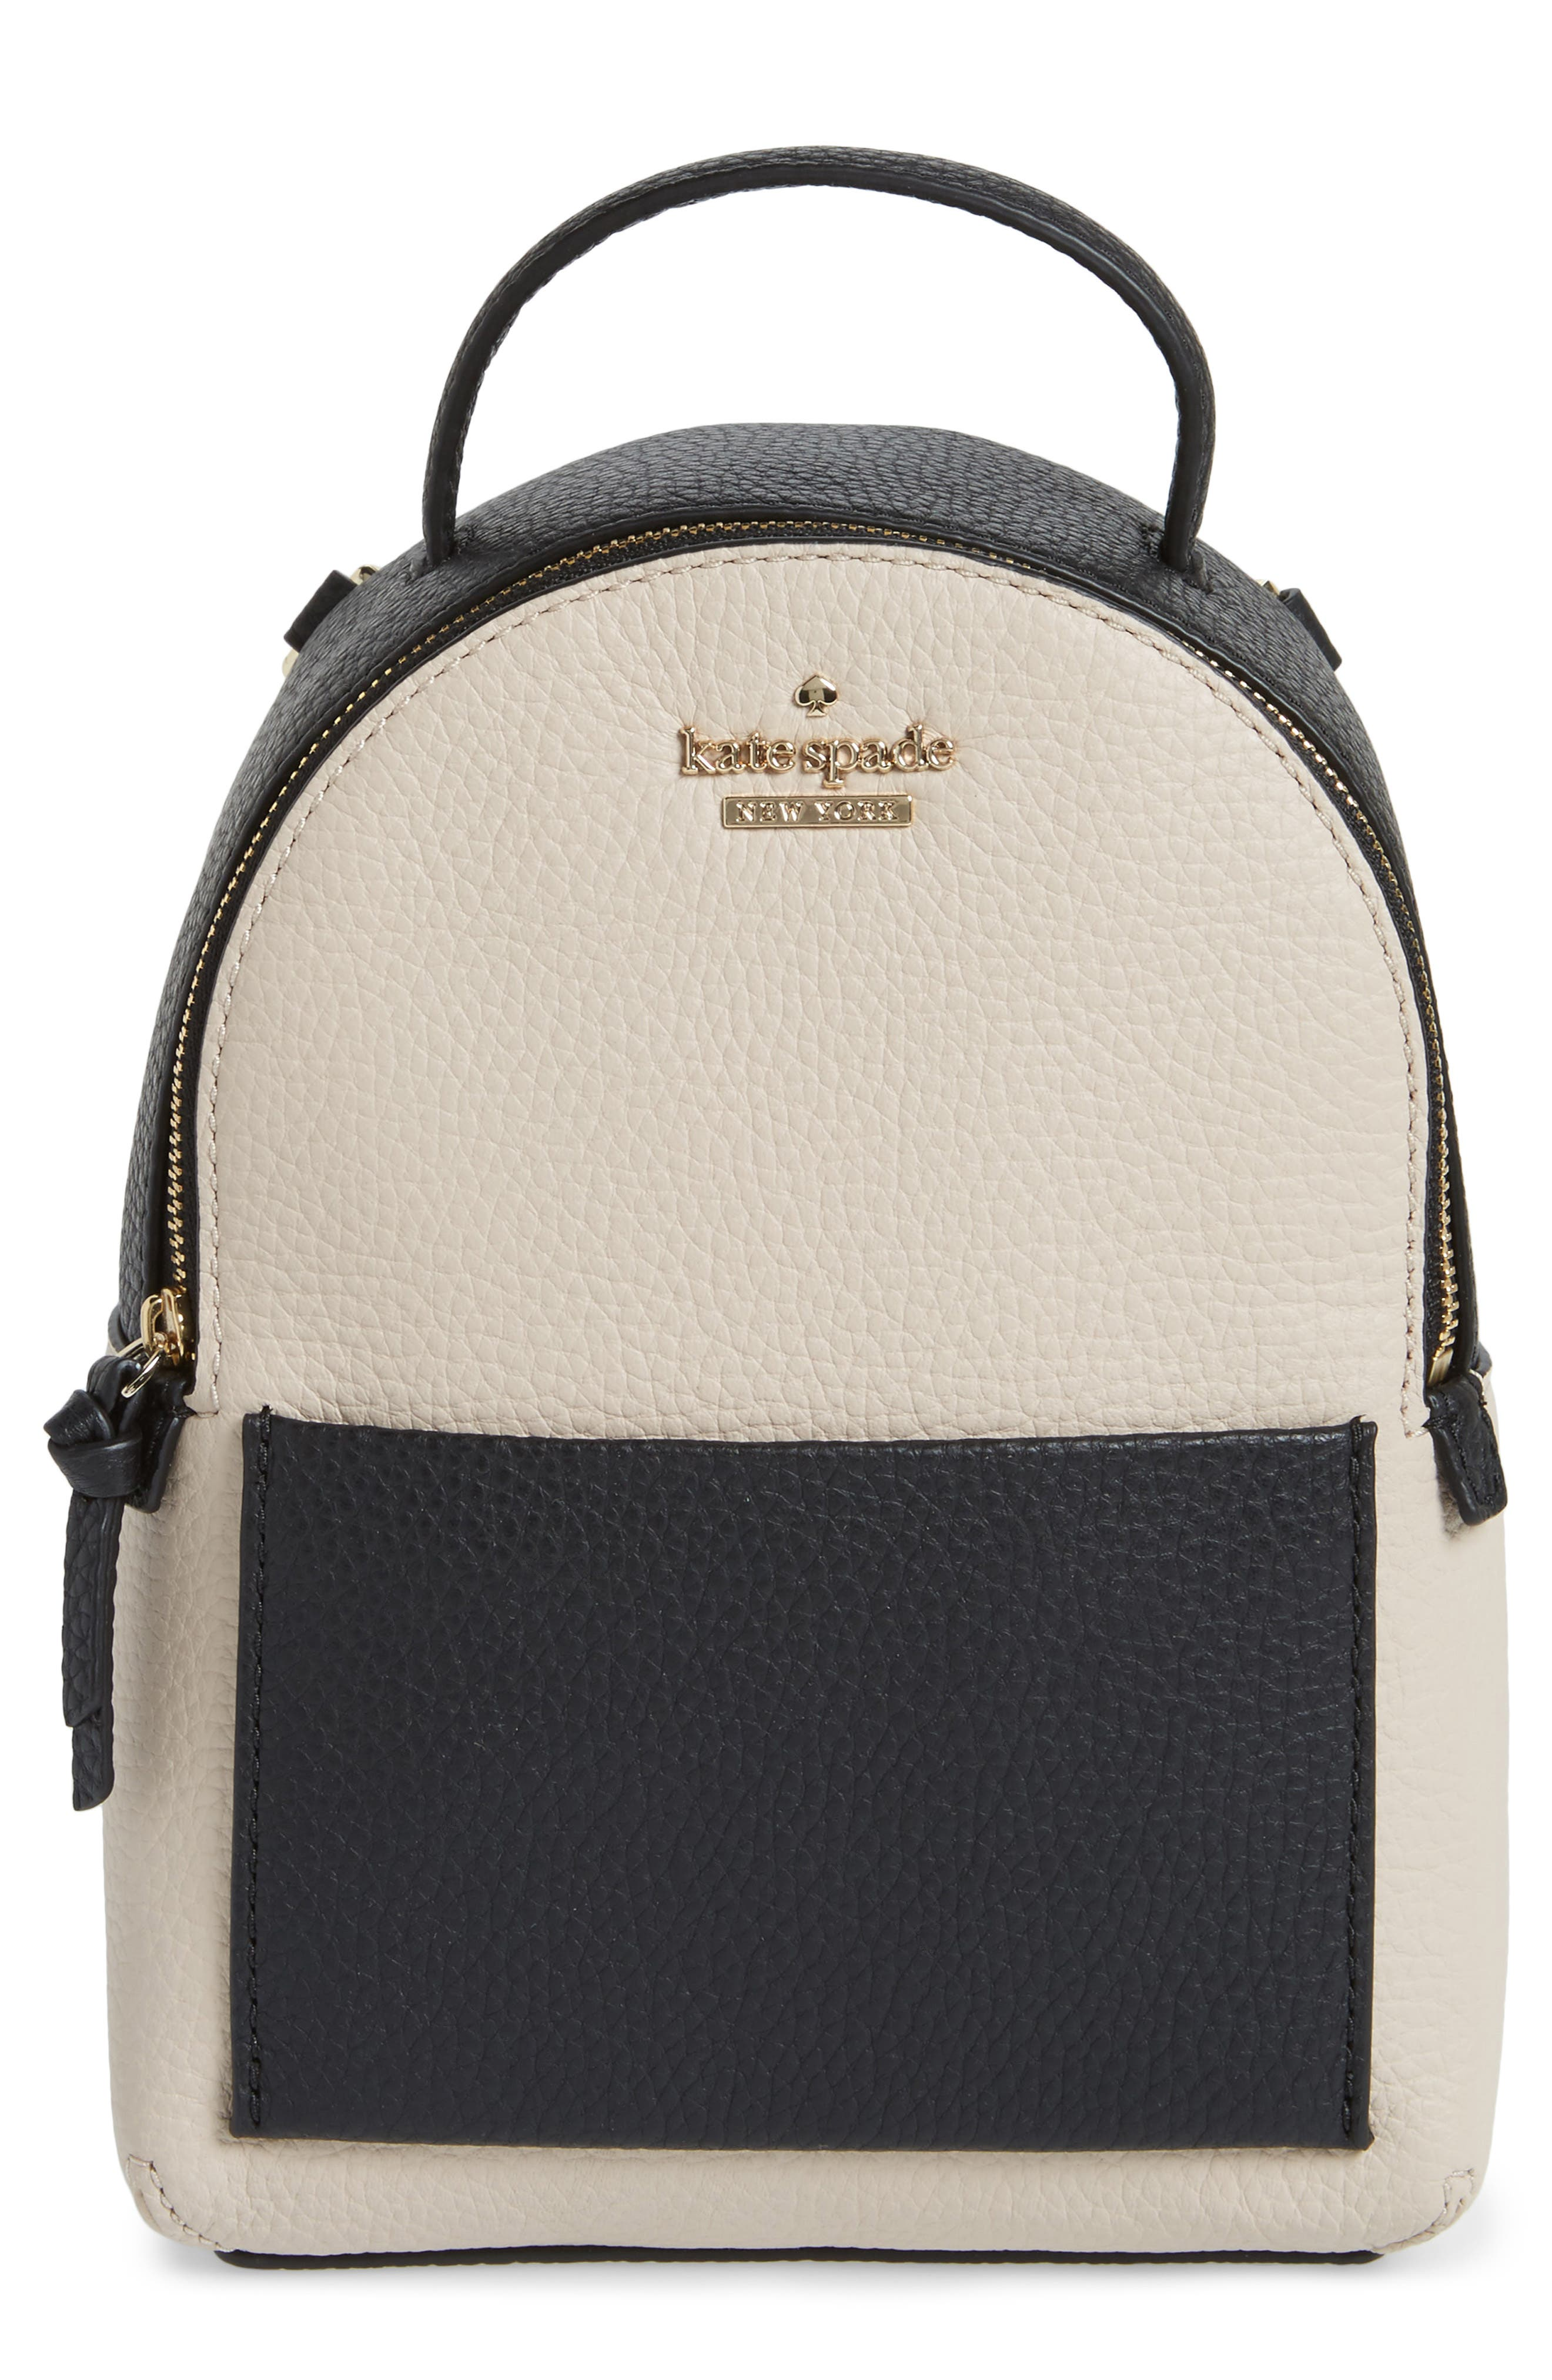 jackson street merry convertible leather backpack,                         Main,                         color, 001